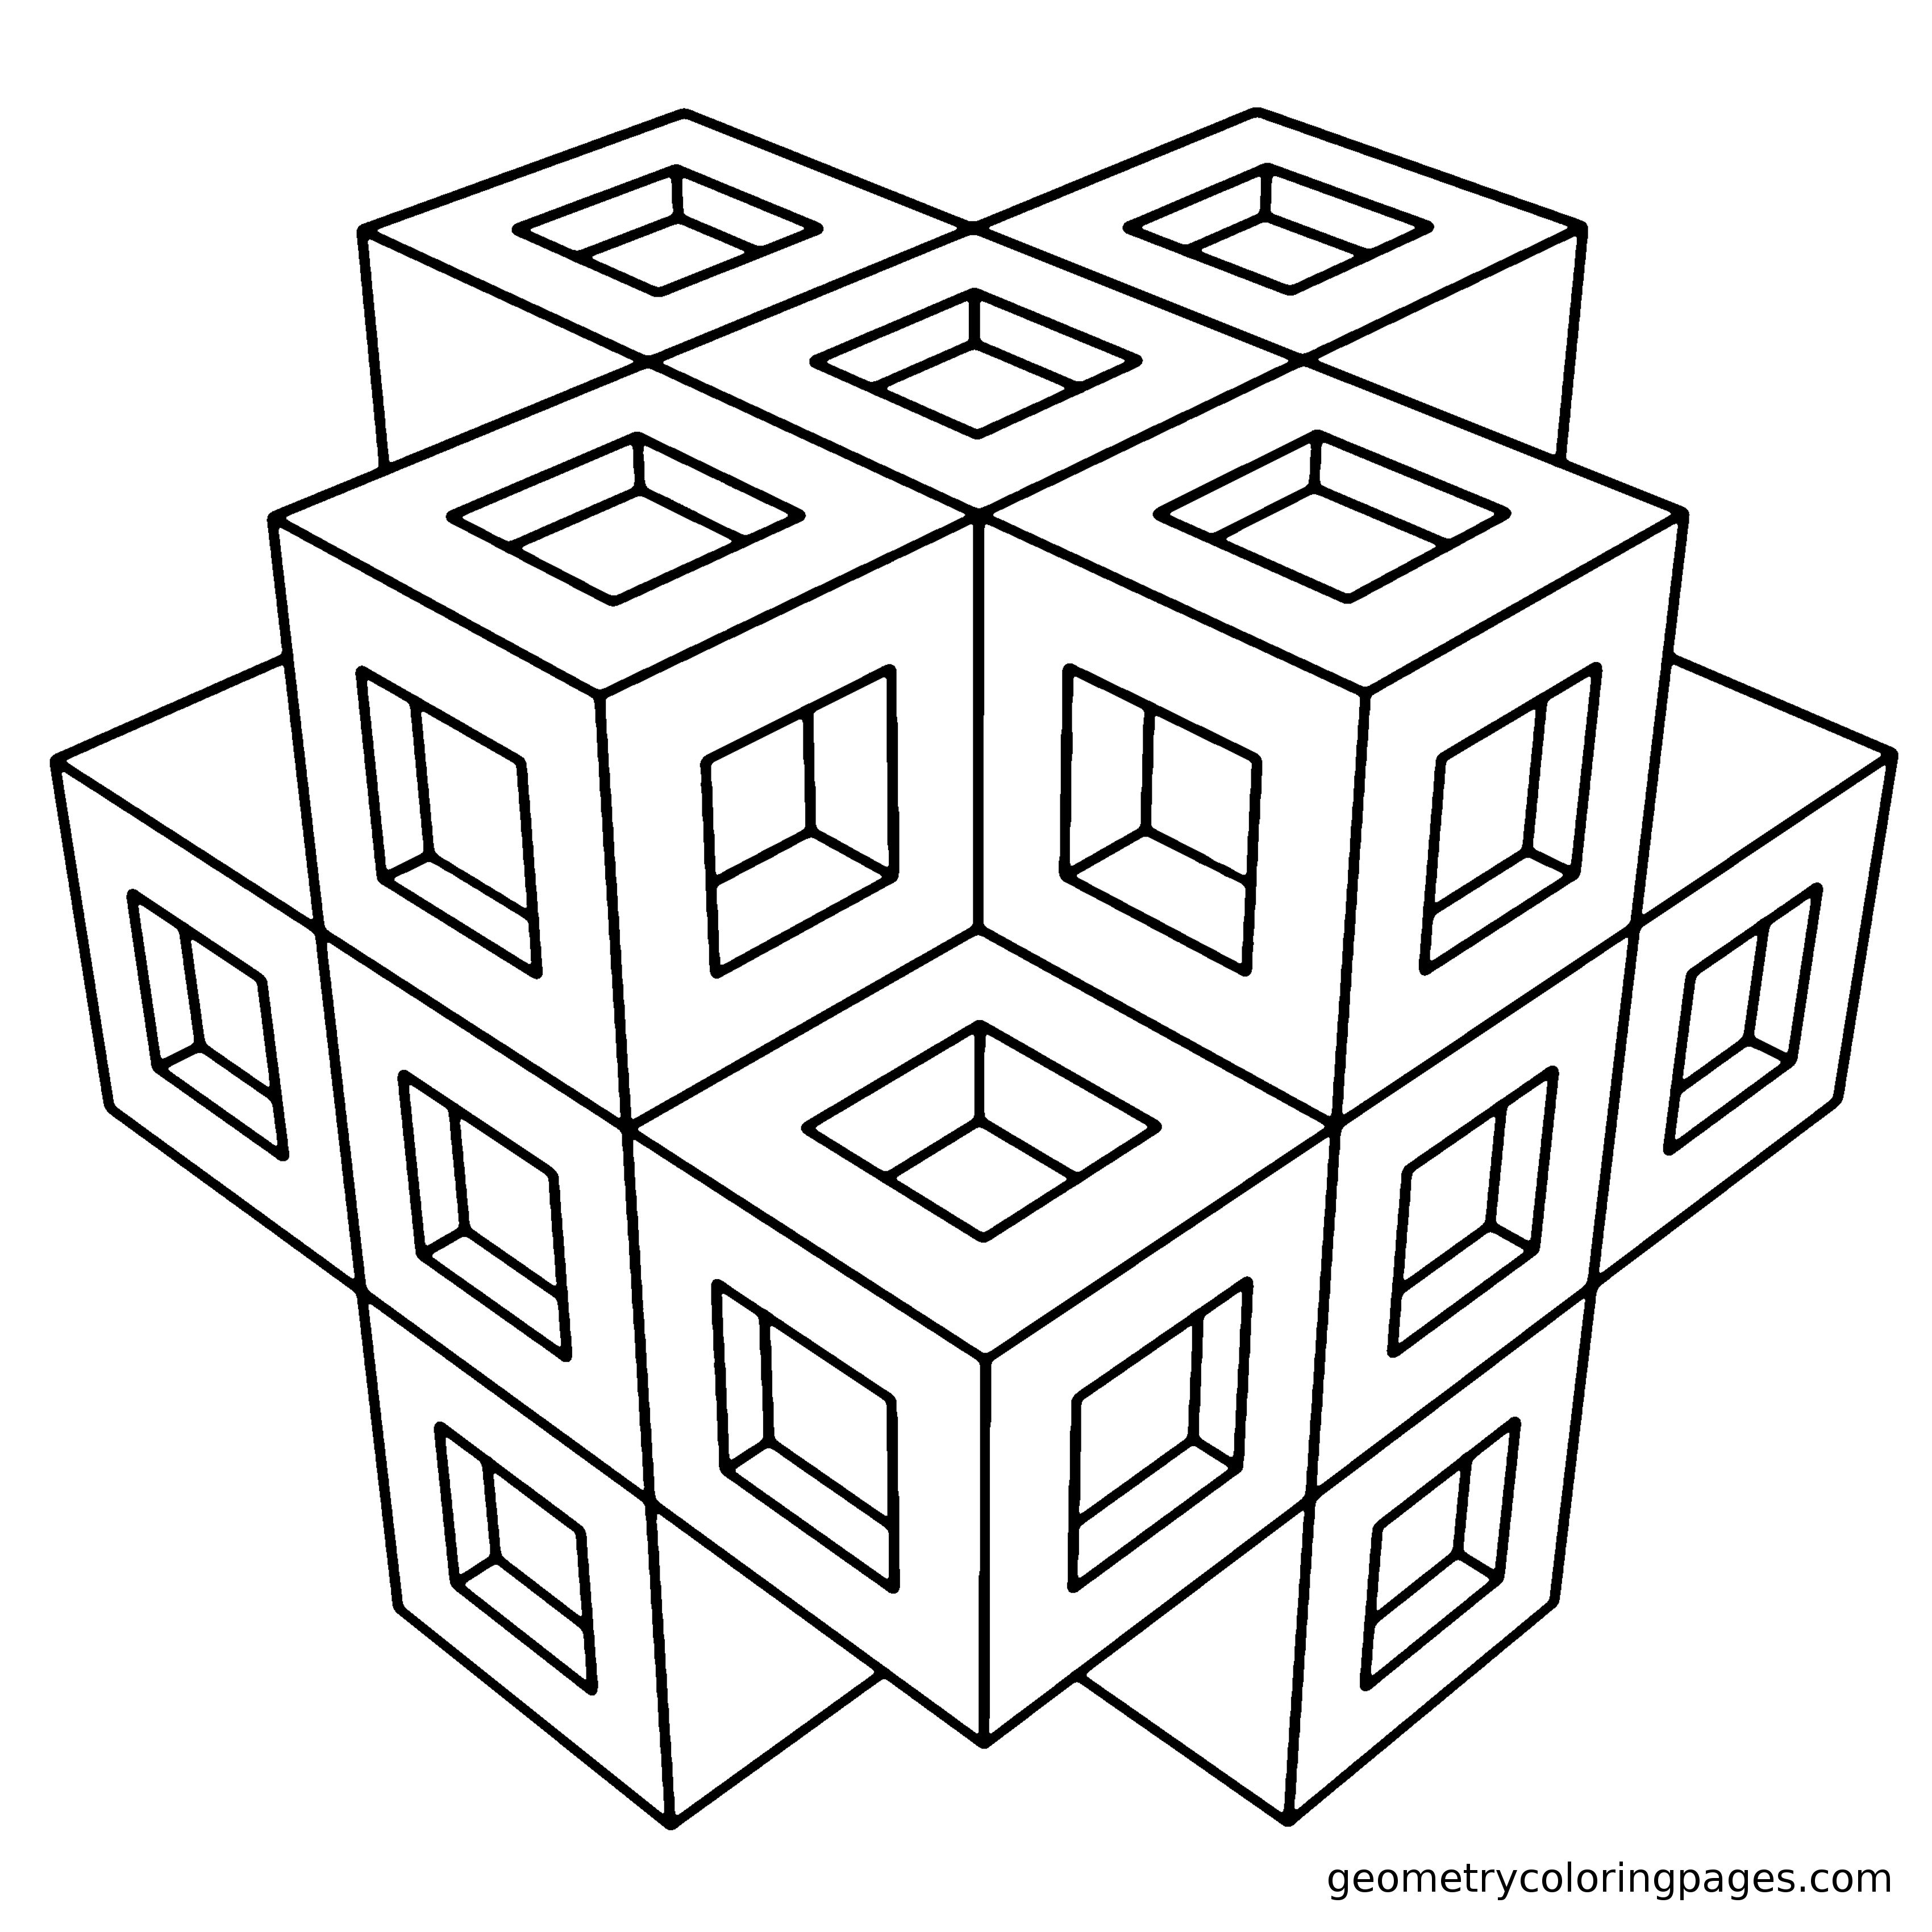 Cubicle Geometry Coloring Pages Geometric Coloring Pages Pattern Coloring Pages Abstract Coloring Pages